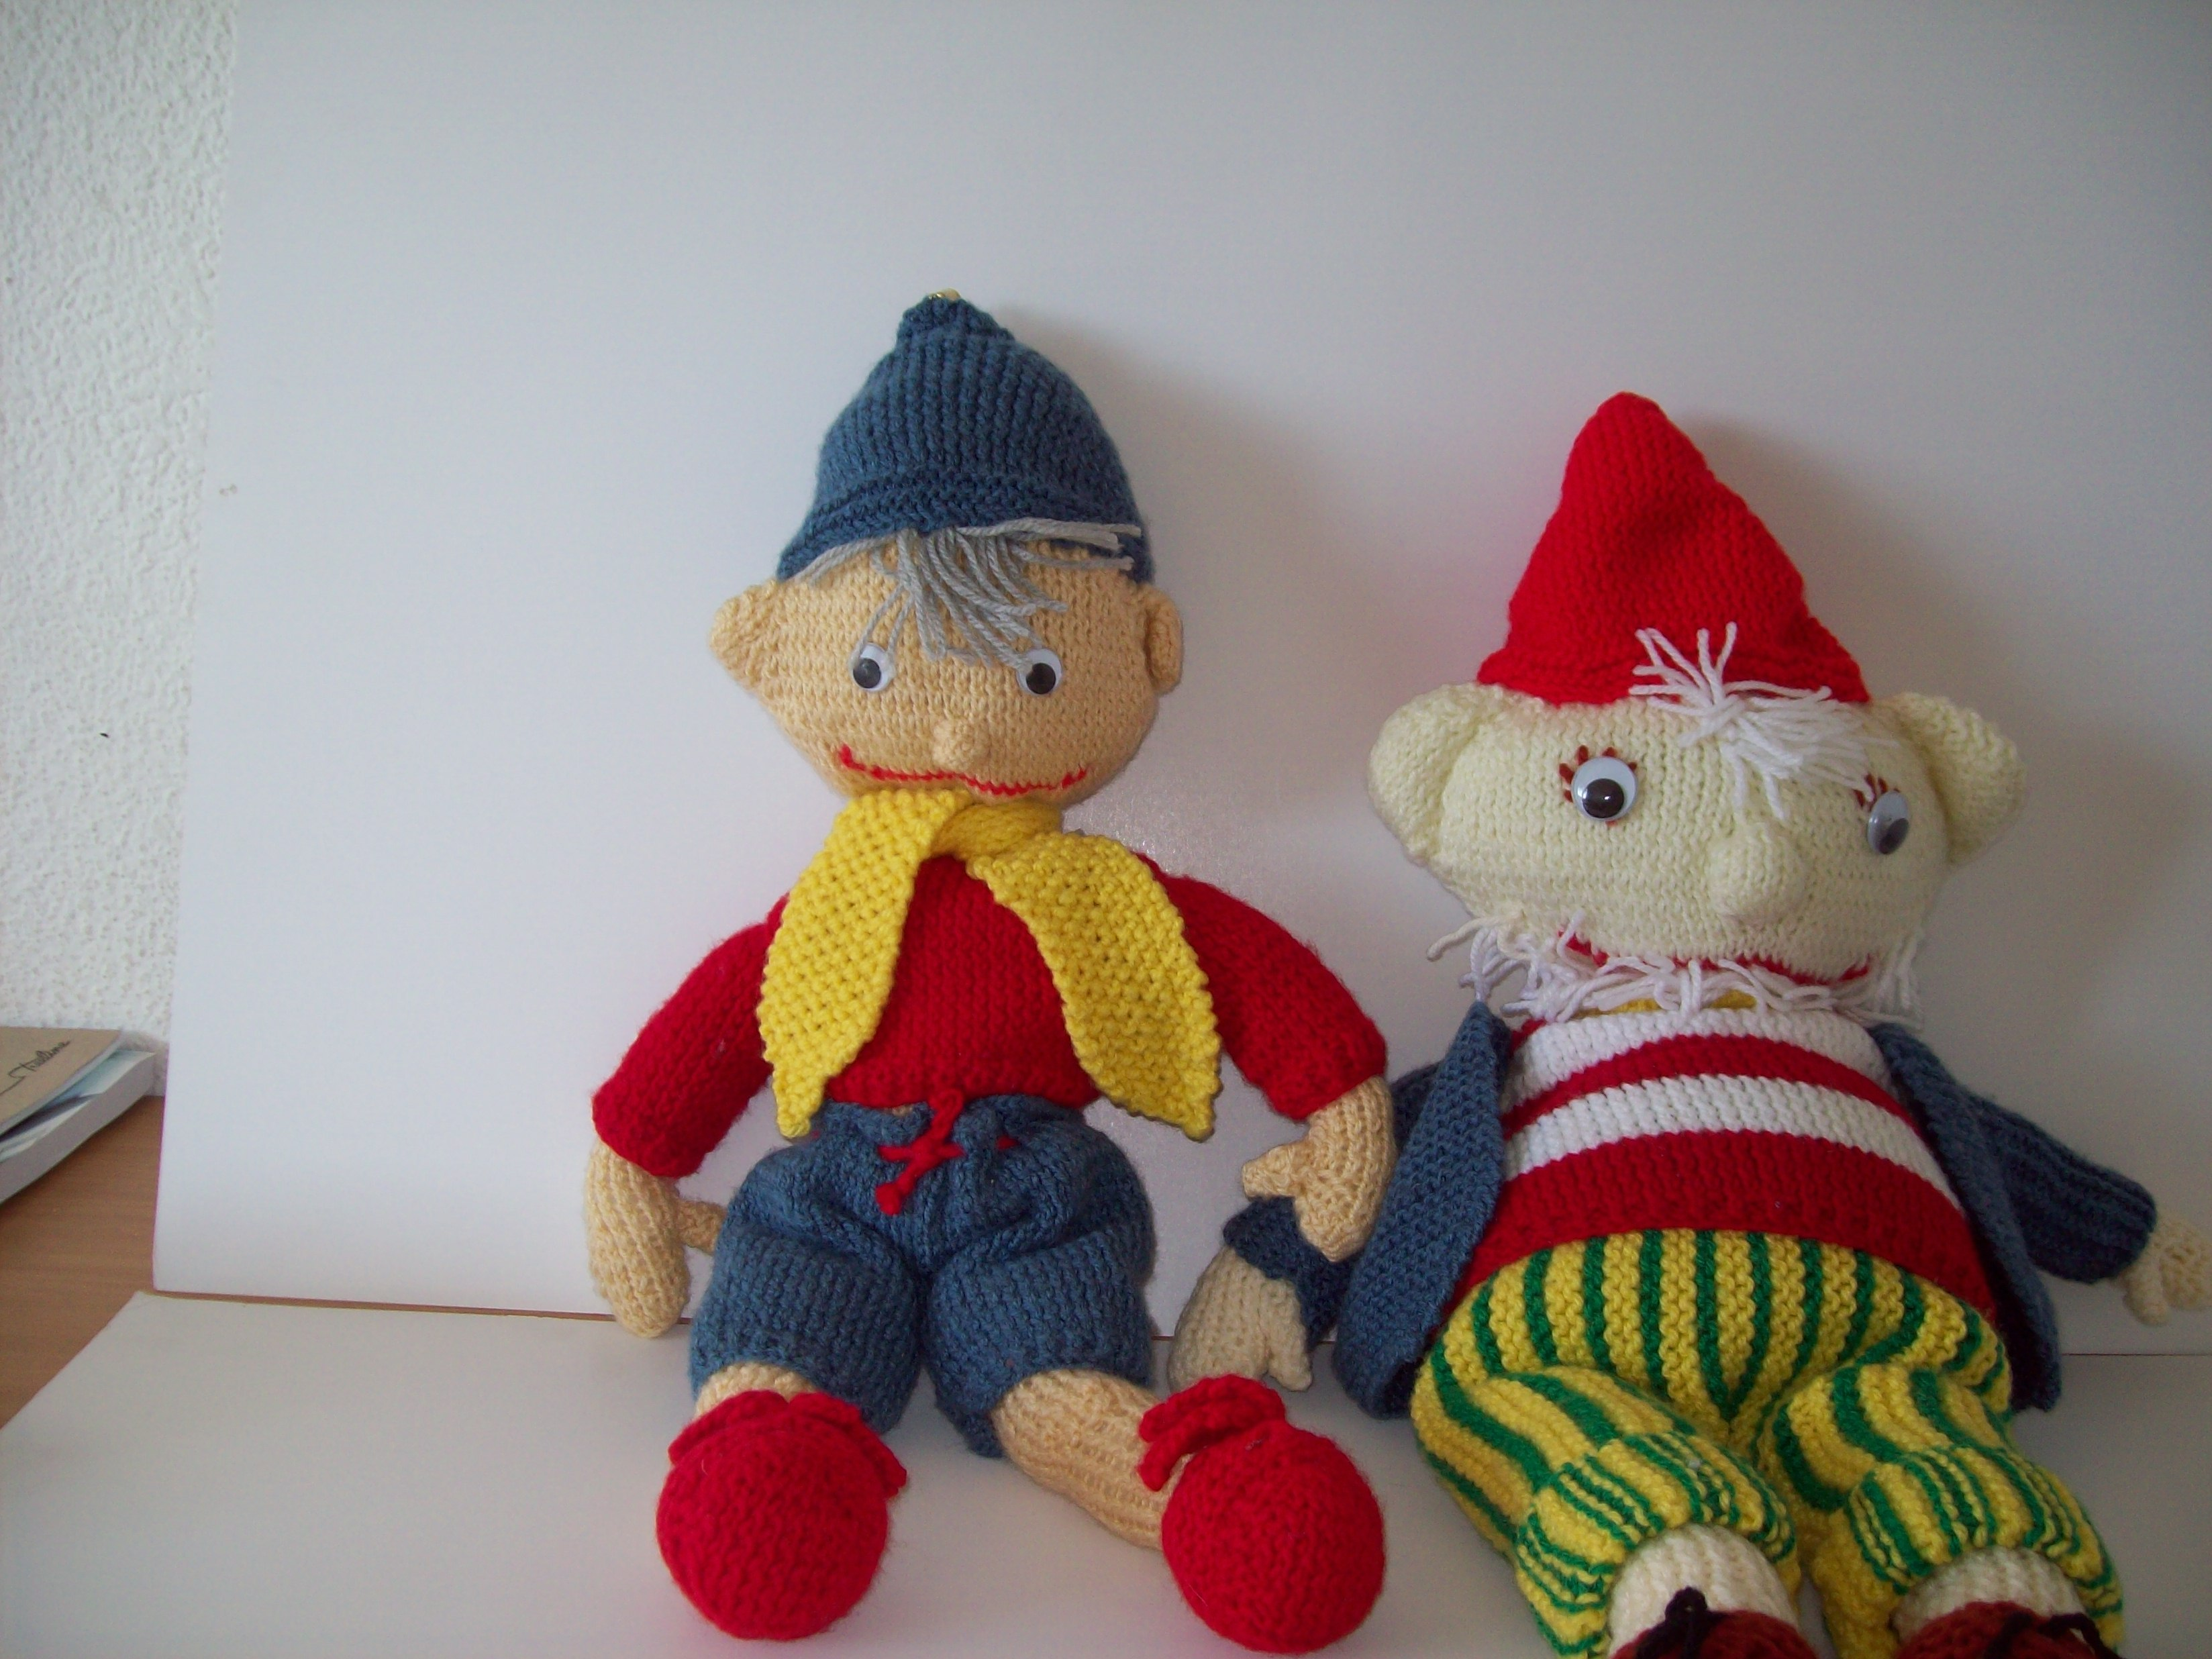 Noddy and big ears knitting project by Mari B LoveKnitting